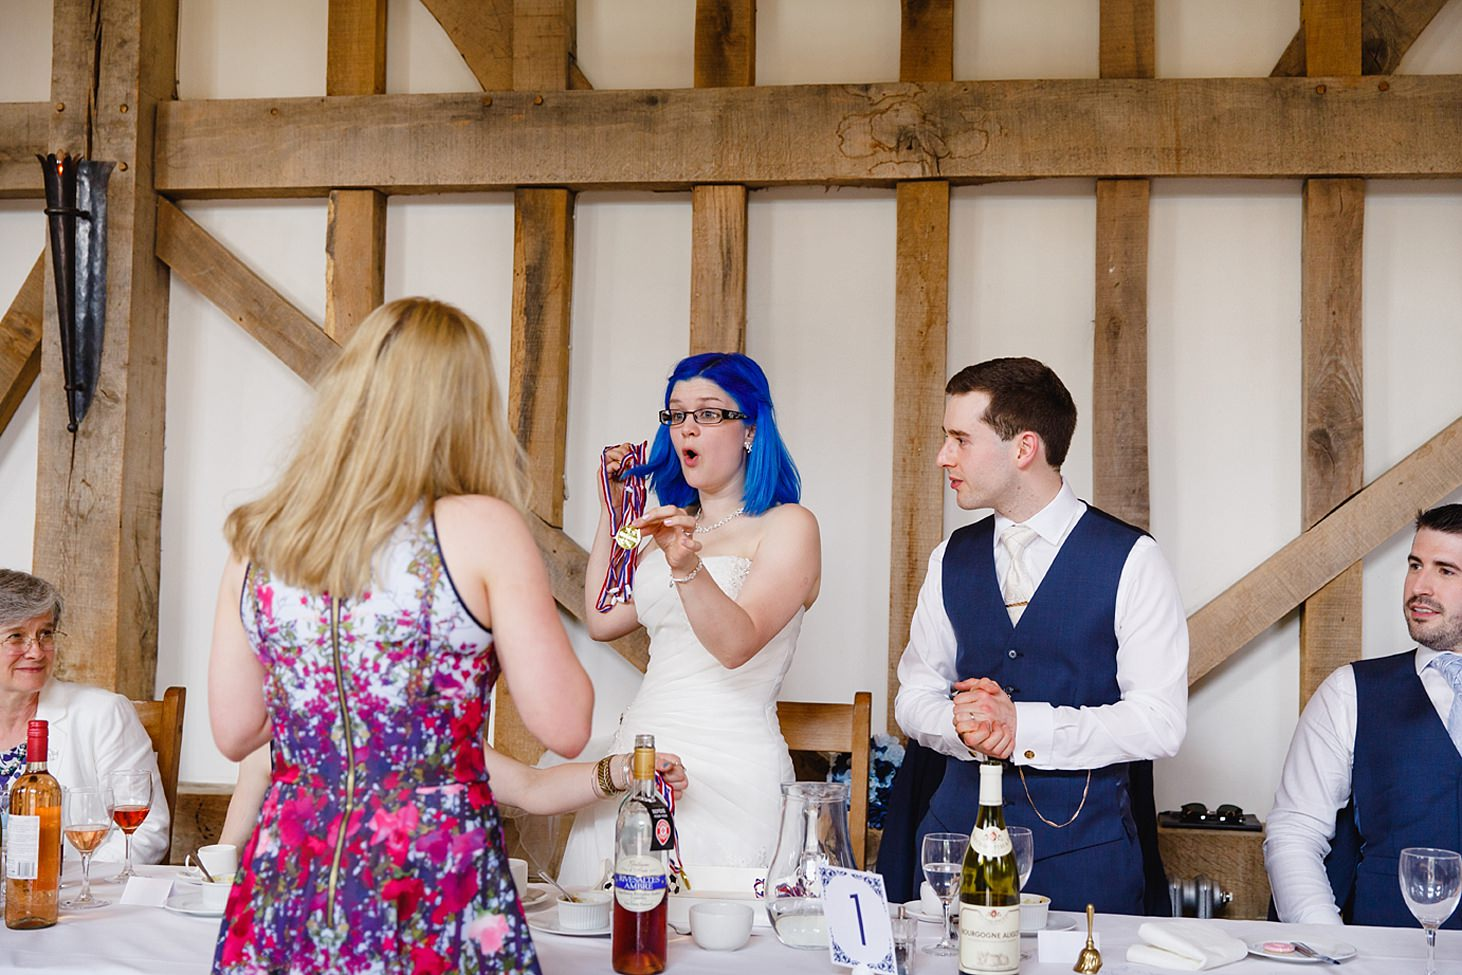 gate street barn wedding photography bride with medal